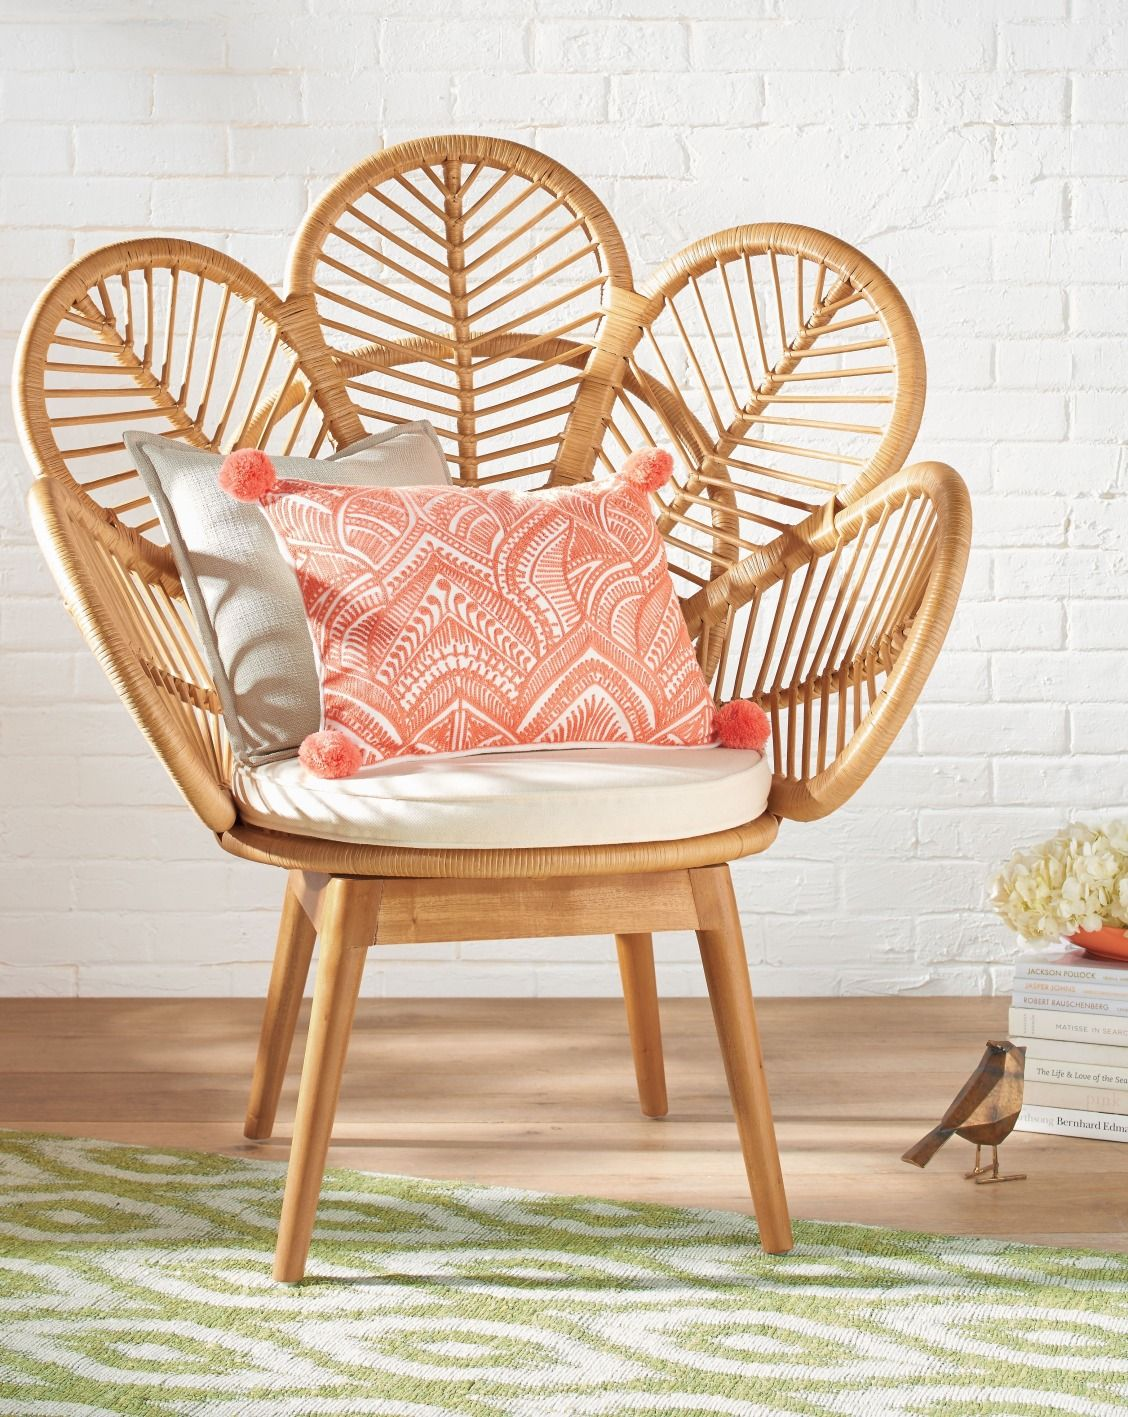 Our Exclusive Daisie Rattan Chair Is A Playful Yet